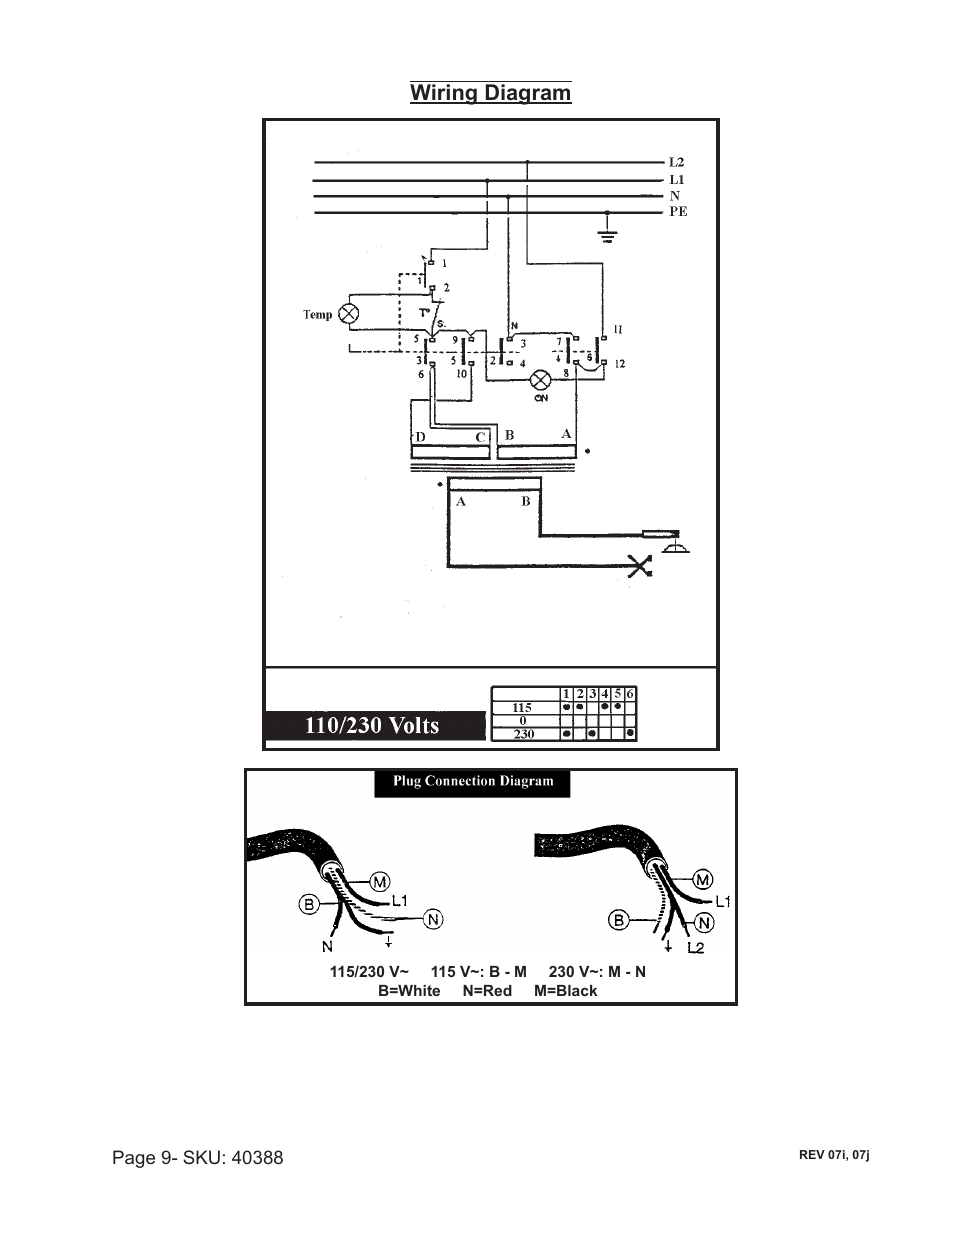 Chicago Electric Generator Wiring Diagram. wiring diagram chicago electric  40388 user manual page. chicago electric winch part list wiring diagram  database. chicago electric welder repair parts. wiring diagram chicago  electric 66619 user2002-acura-tl-radio.info